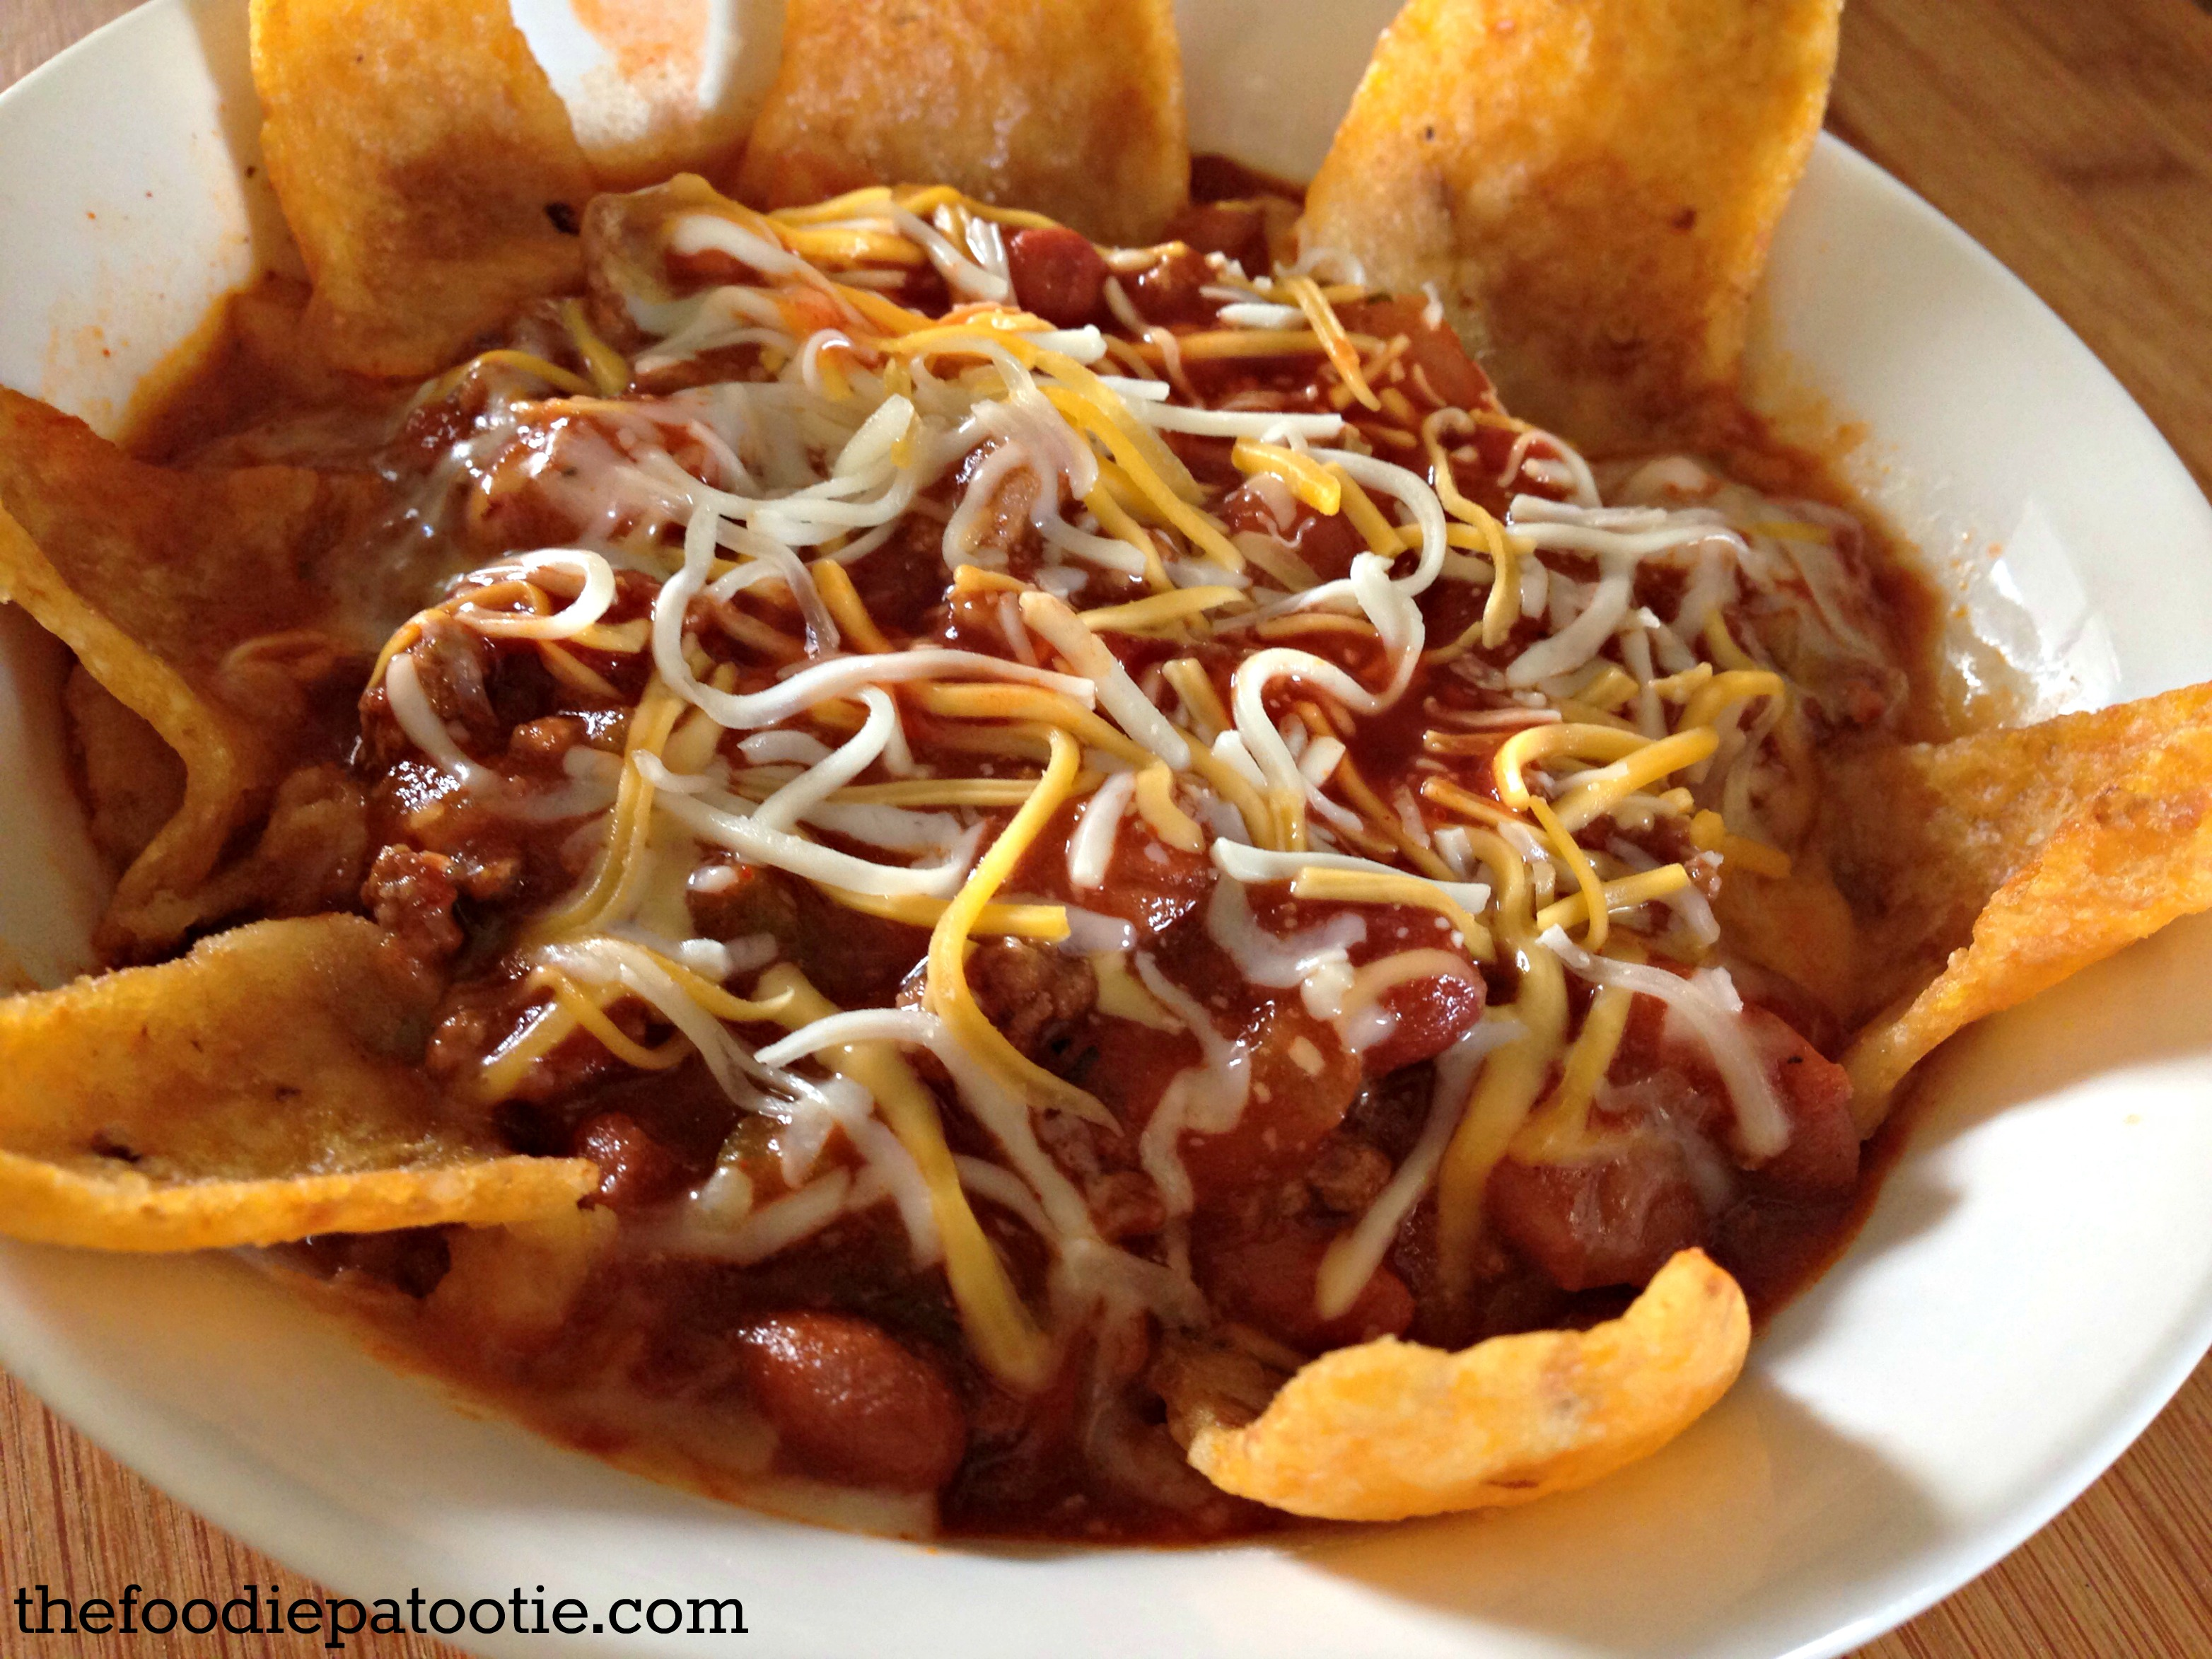 National corn chip day good ol chili the foodie patootie for What can i make with tortilla chips